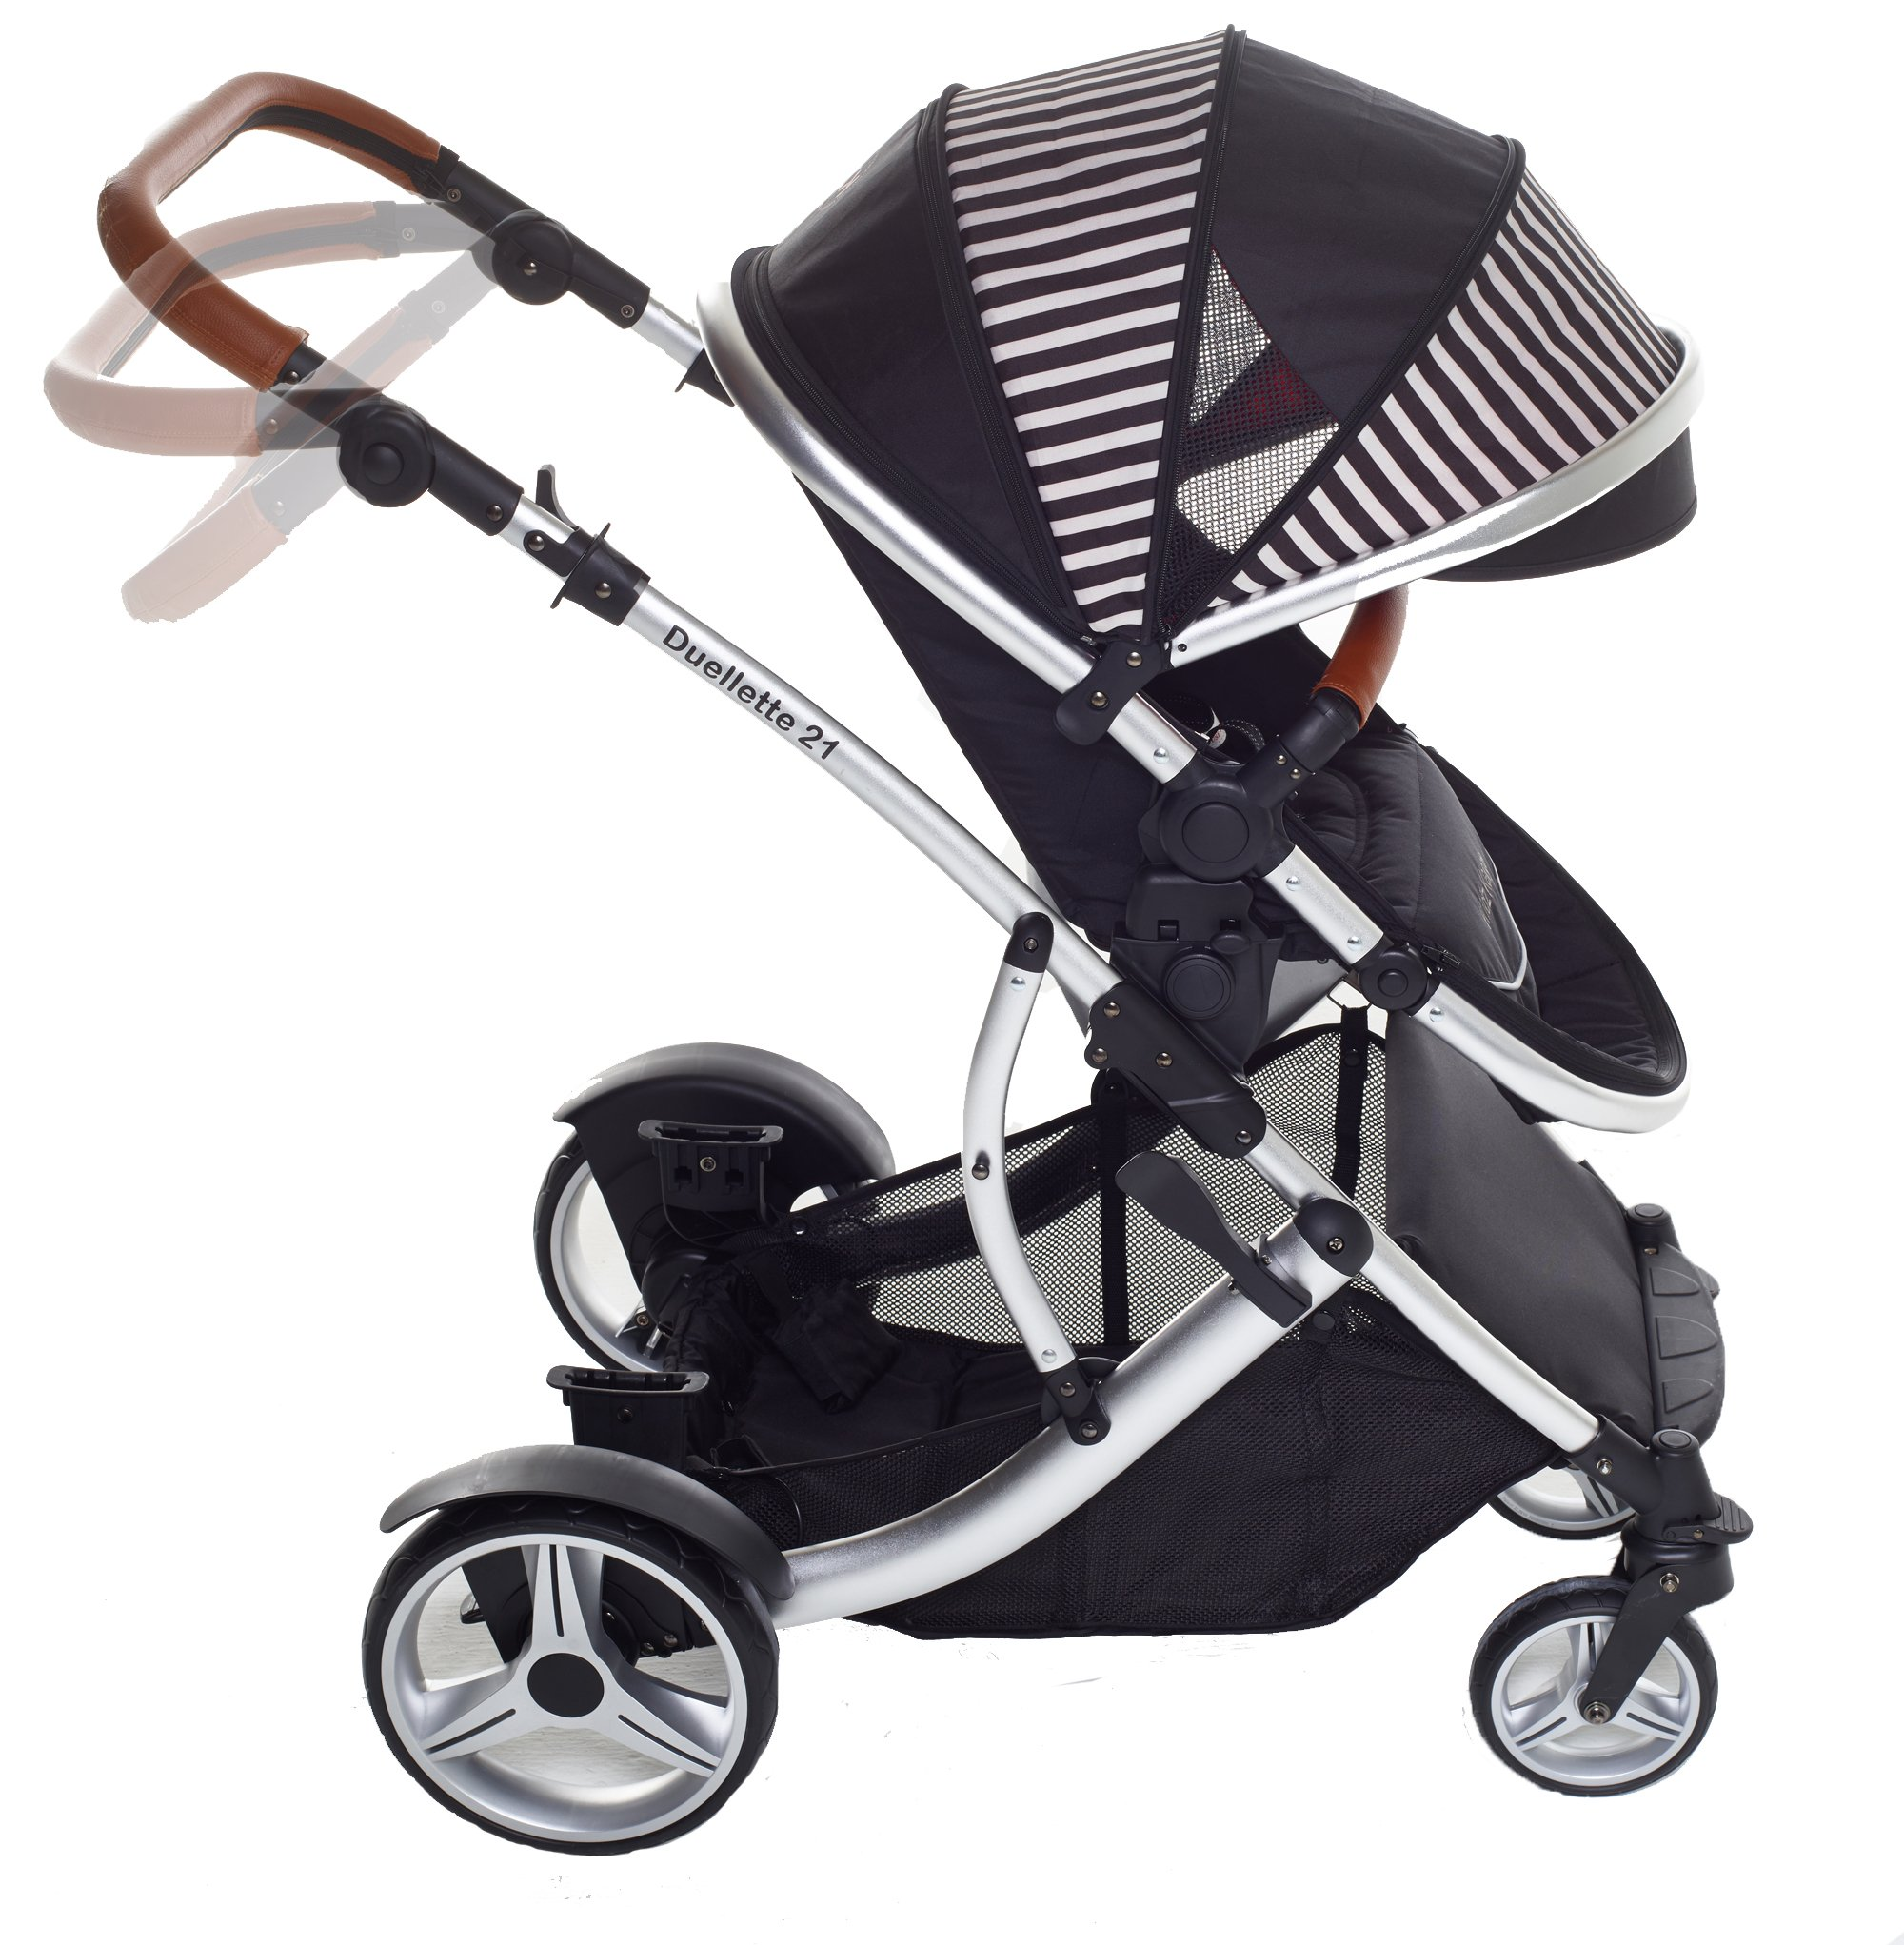 Kids Kargo Duellette 21 Bs Twin Double Pushchair Stroller Buggy with Tan Handle Pack (Oxford Stripe) Kids Kargo Fully safety tested Various seat positions. Both seats can face mum (ideal for twins) Suitability Newborn Twins (if used with car seats) or Newborn/toddler. Accommodates 1 or 2 car seats 4